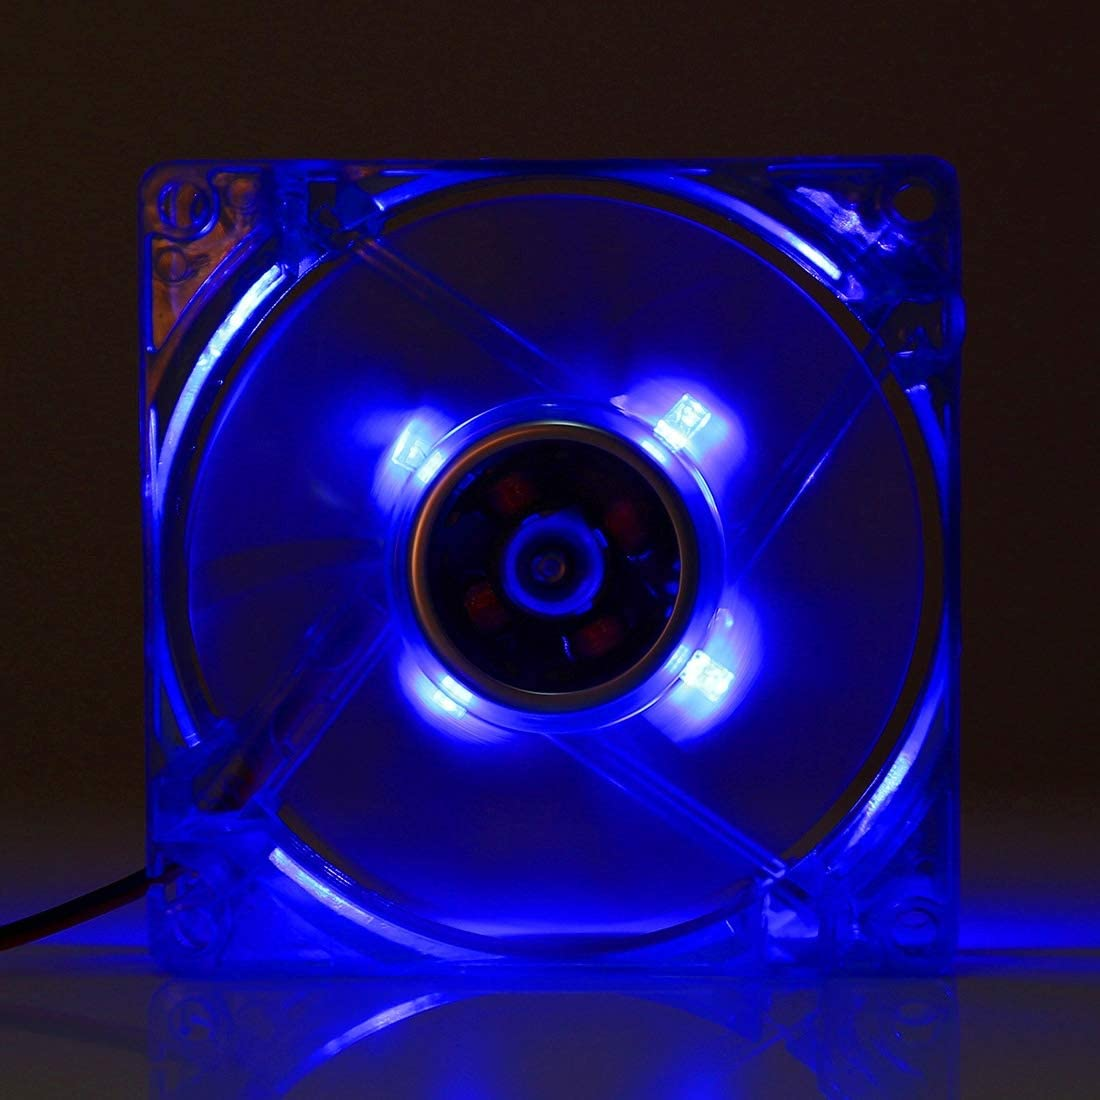 IPartserve Computer Accessories JA 8025 4 Pin DC 12V 0.18A Computer Case Cooler Cooling Fan with LED Light Dark Blue Size: 80x80x25mm Color : Green